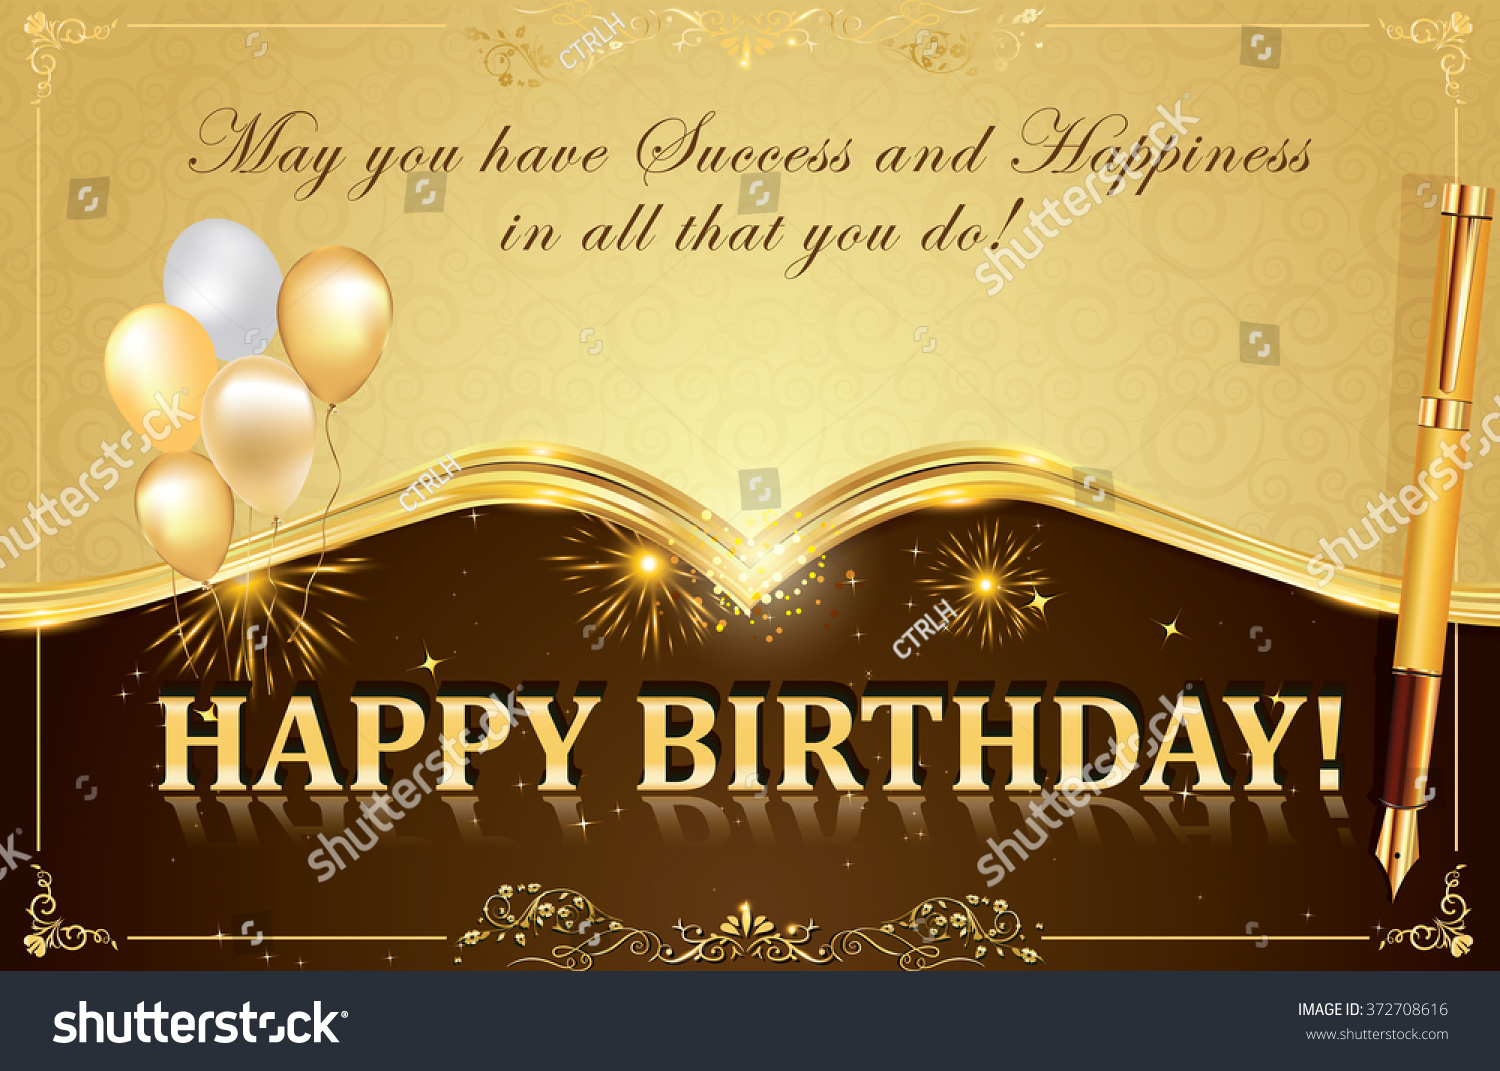 Happy Birthday Card Fireworks Balloons Pen Illustration – Birthday Card for Colleague